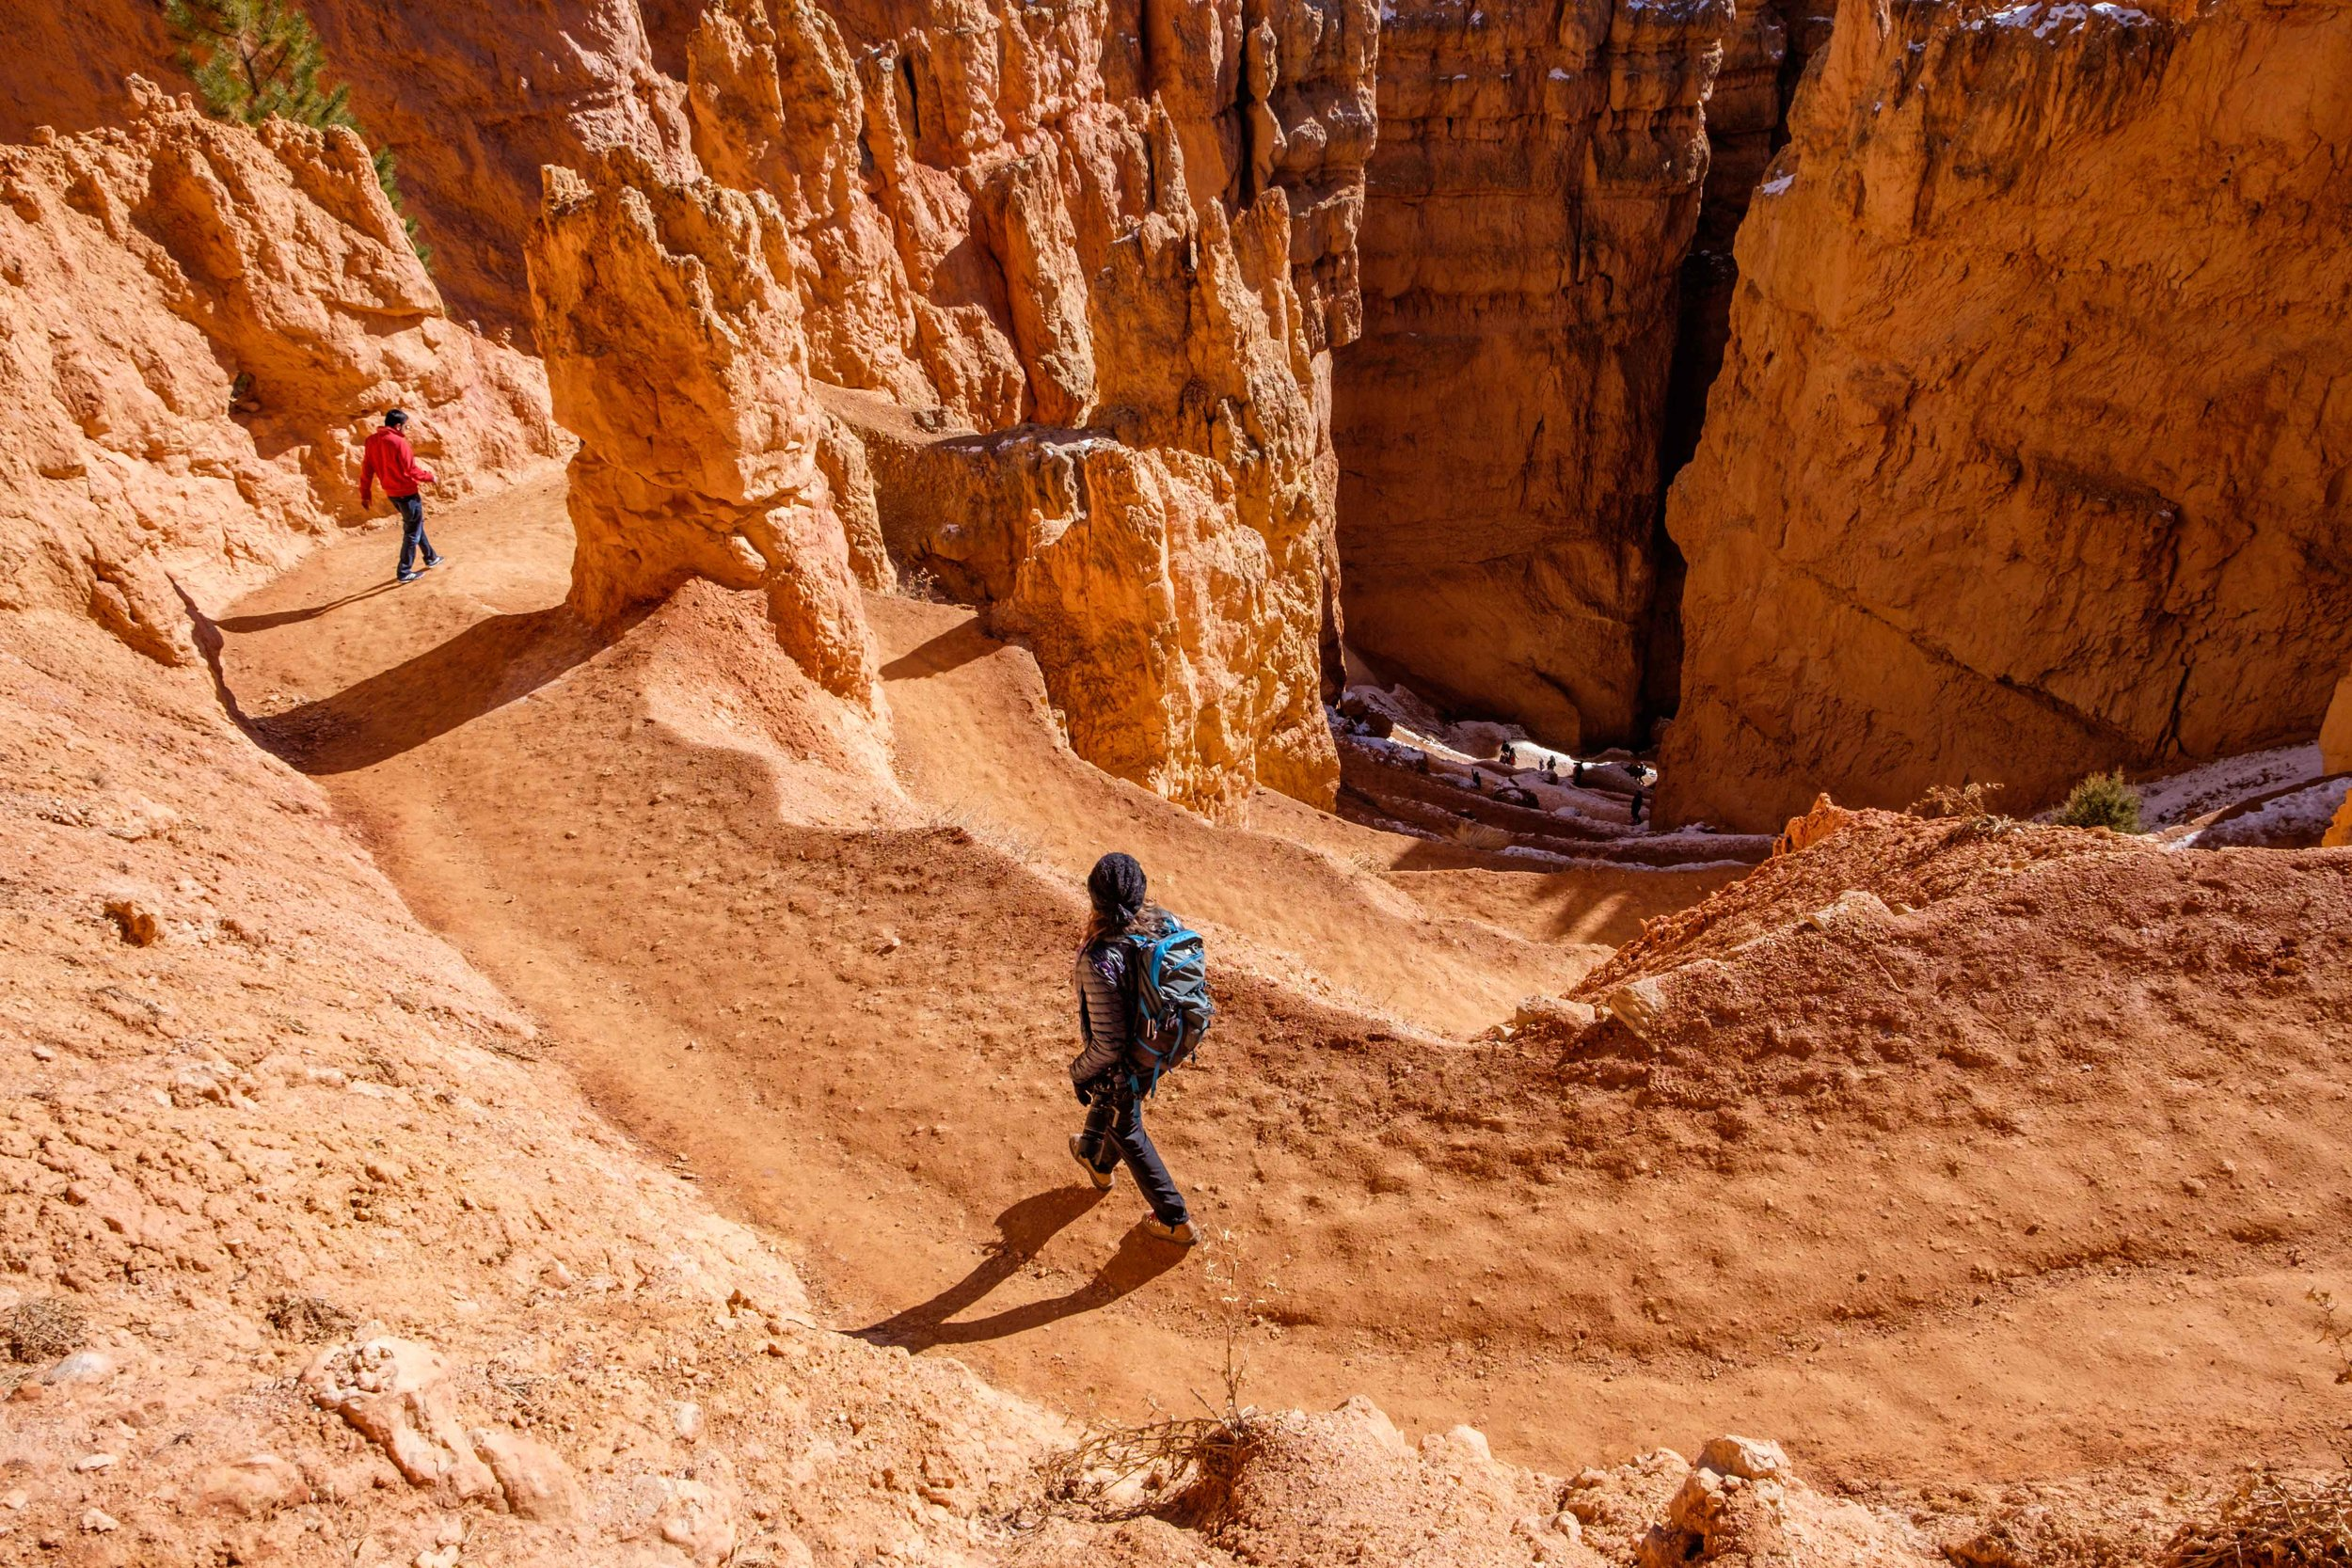 Descending the Navajo Loop trail from Sunset Point.